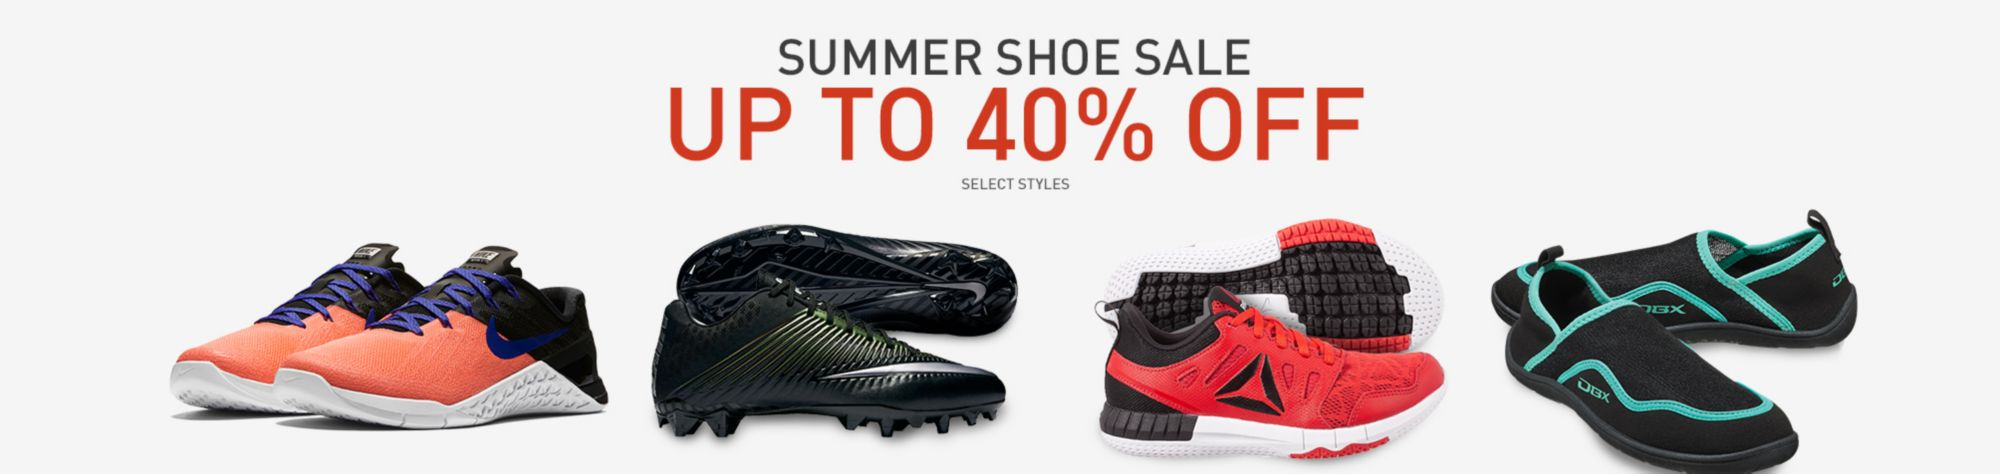 Shop Footwear Sales